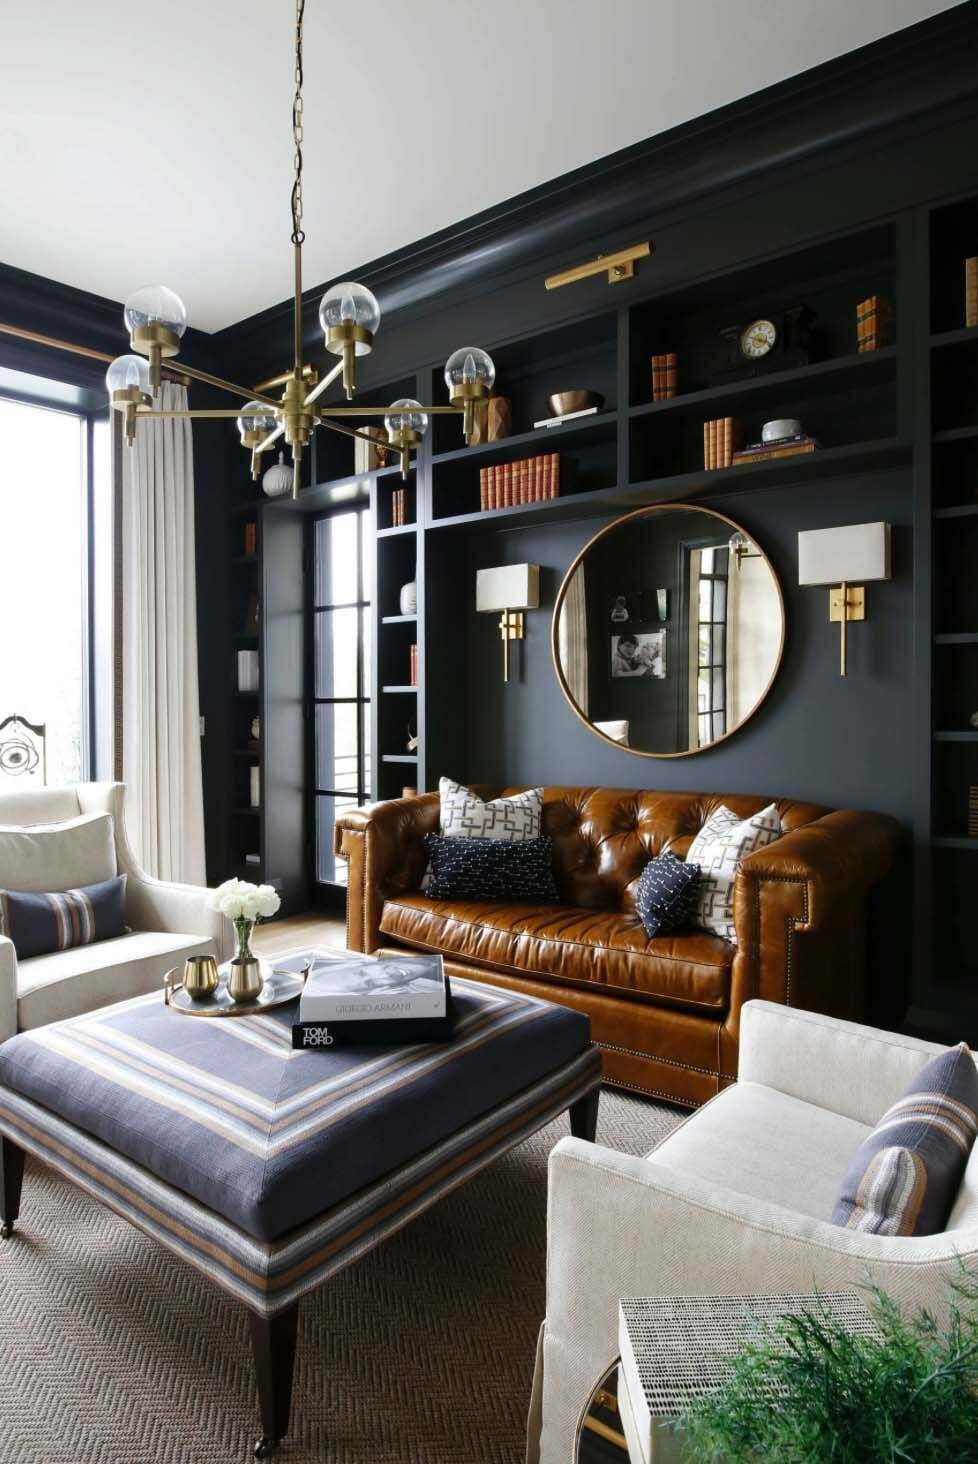 28 gorgeous living rooms with black walls that create cozy on beautiful modern black white living room inspired id=56034